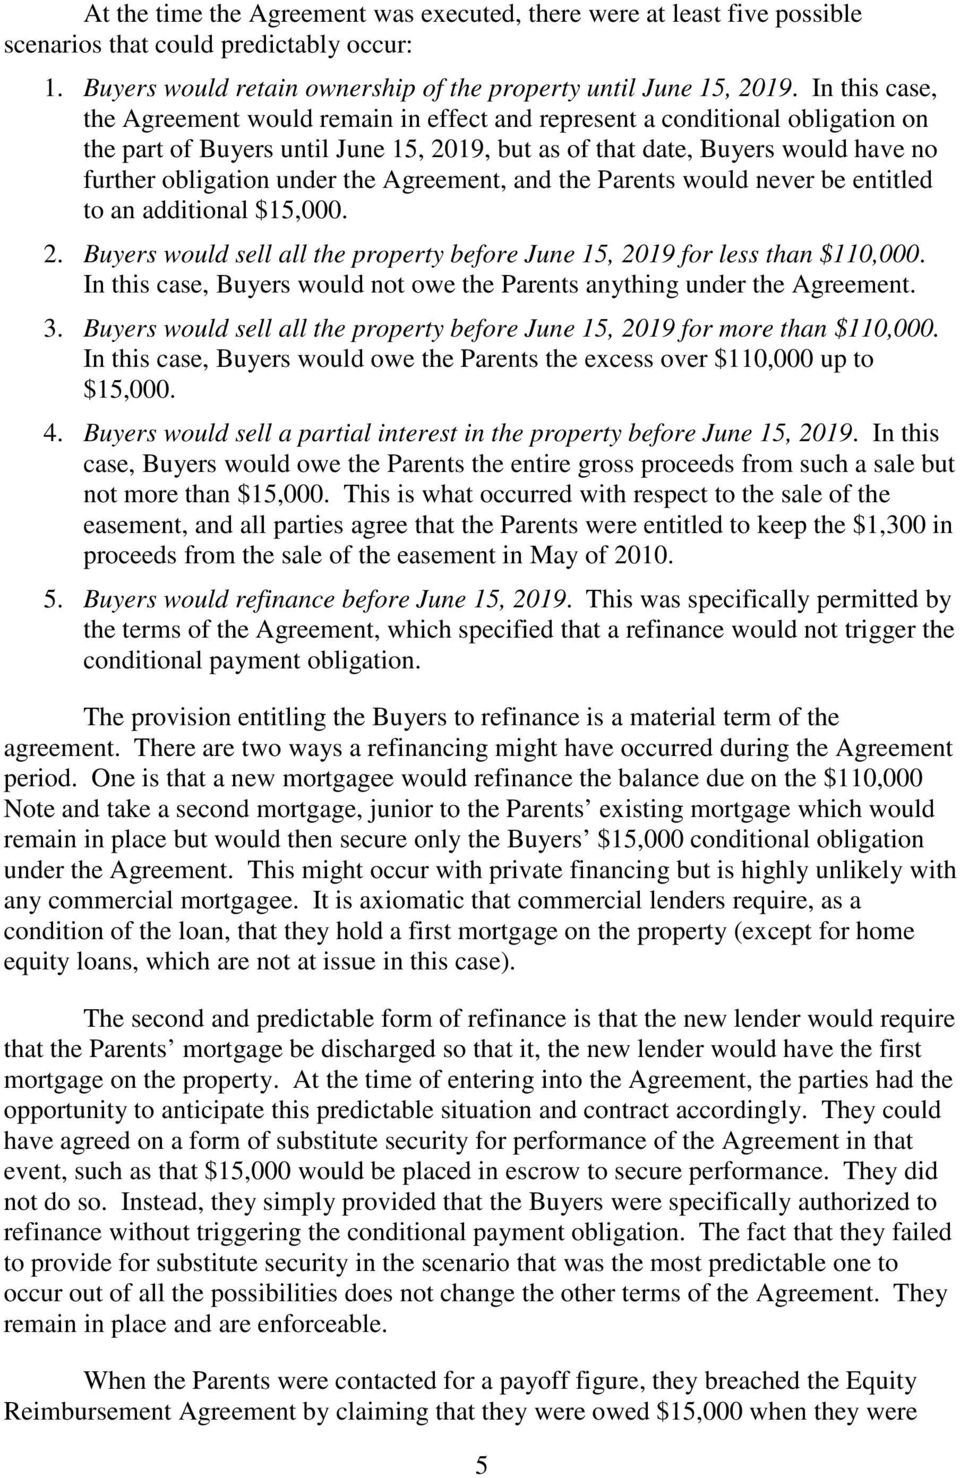 the Agreement, and the Parents would never be entitled to an additional $15,000. 2. Buyers would sell all the property before June 15, 2019 for less than $110,000.